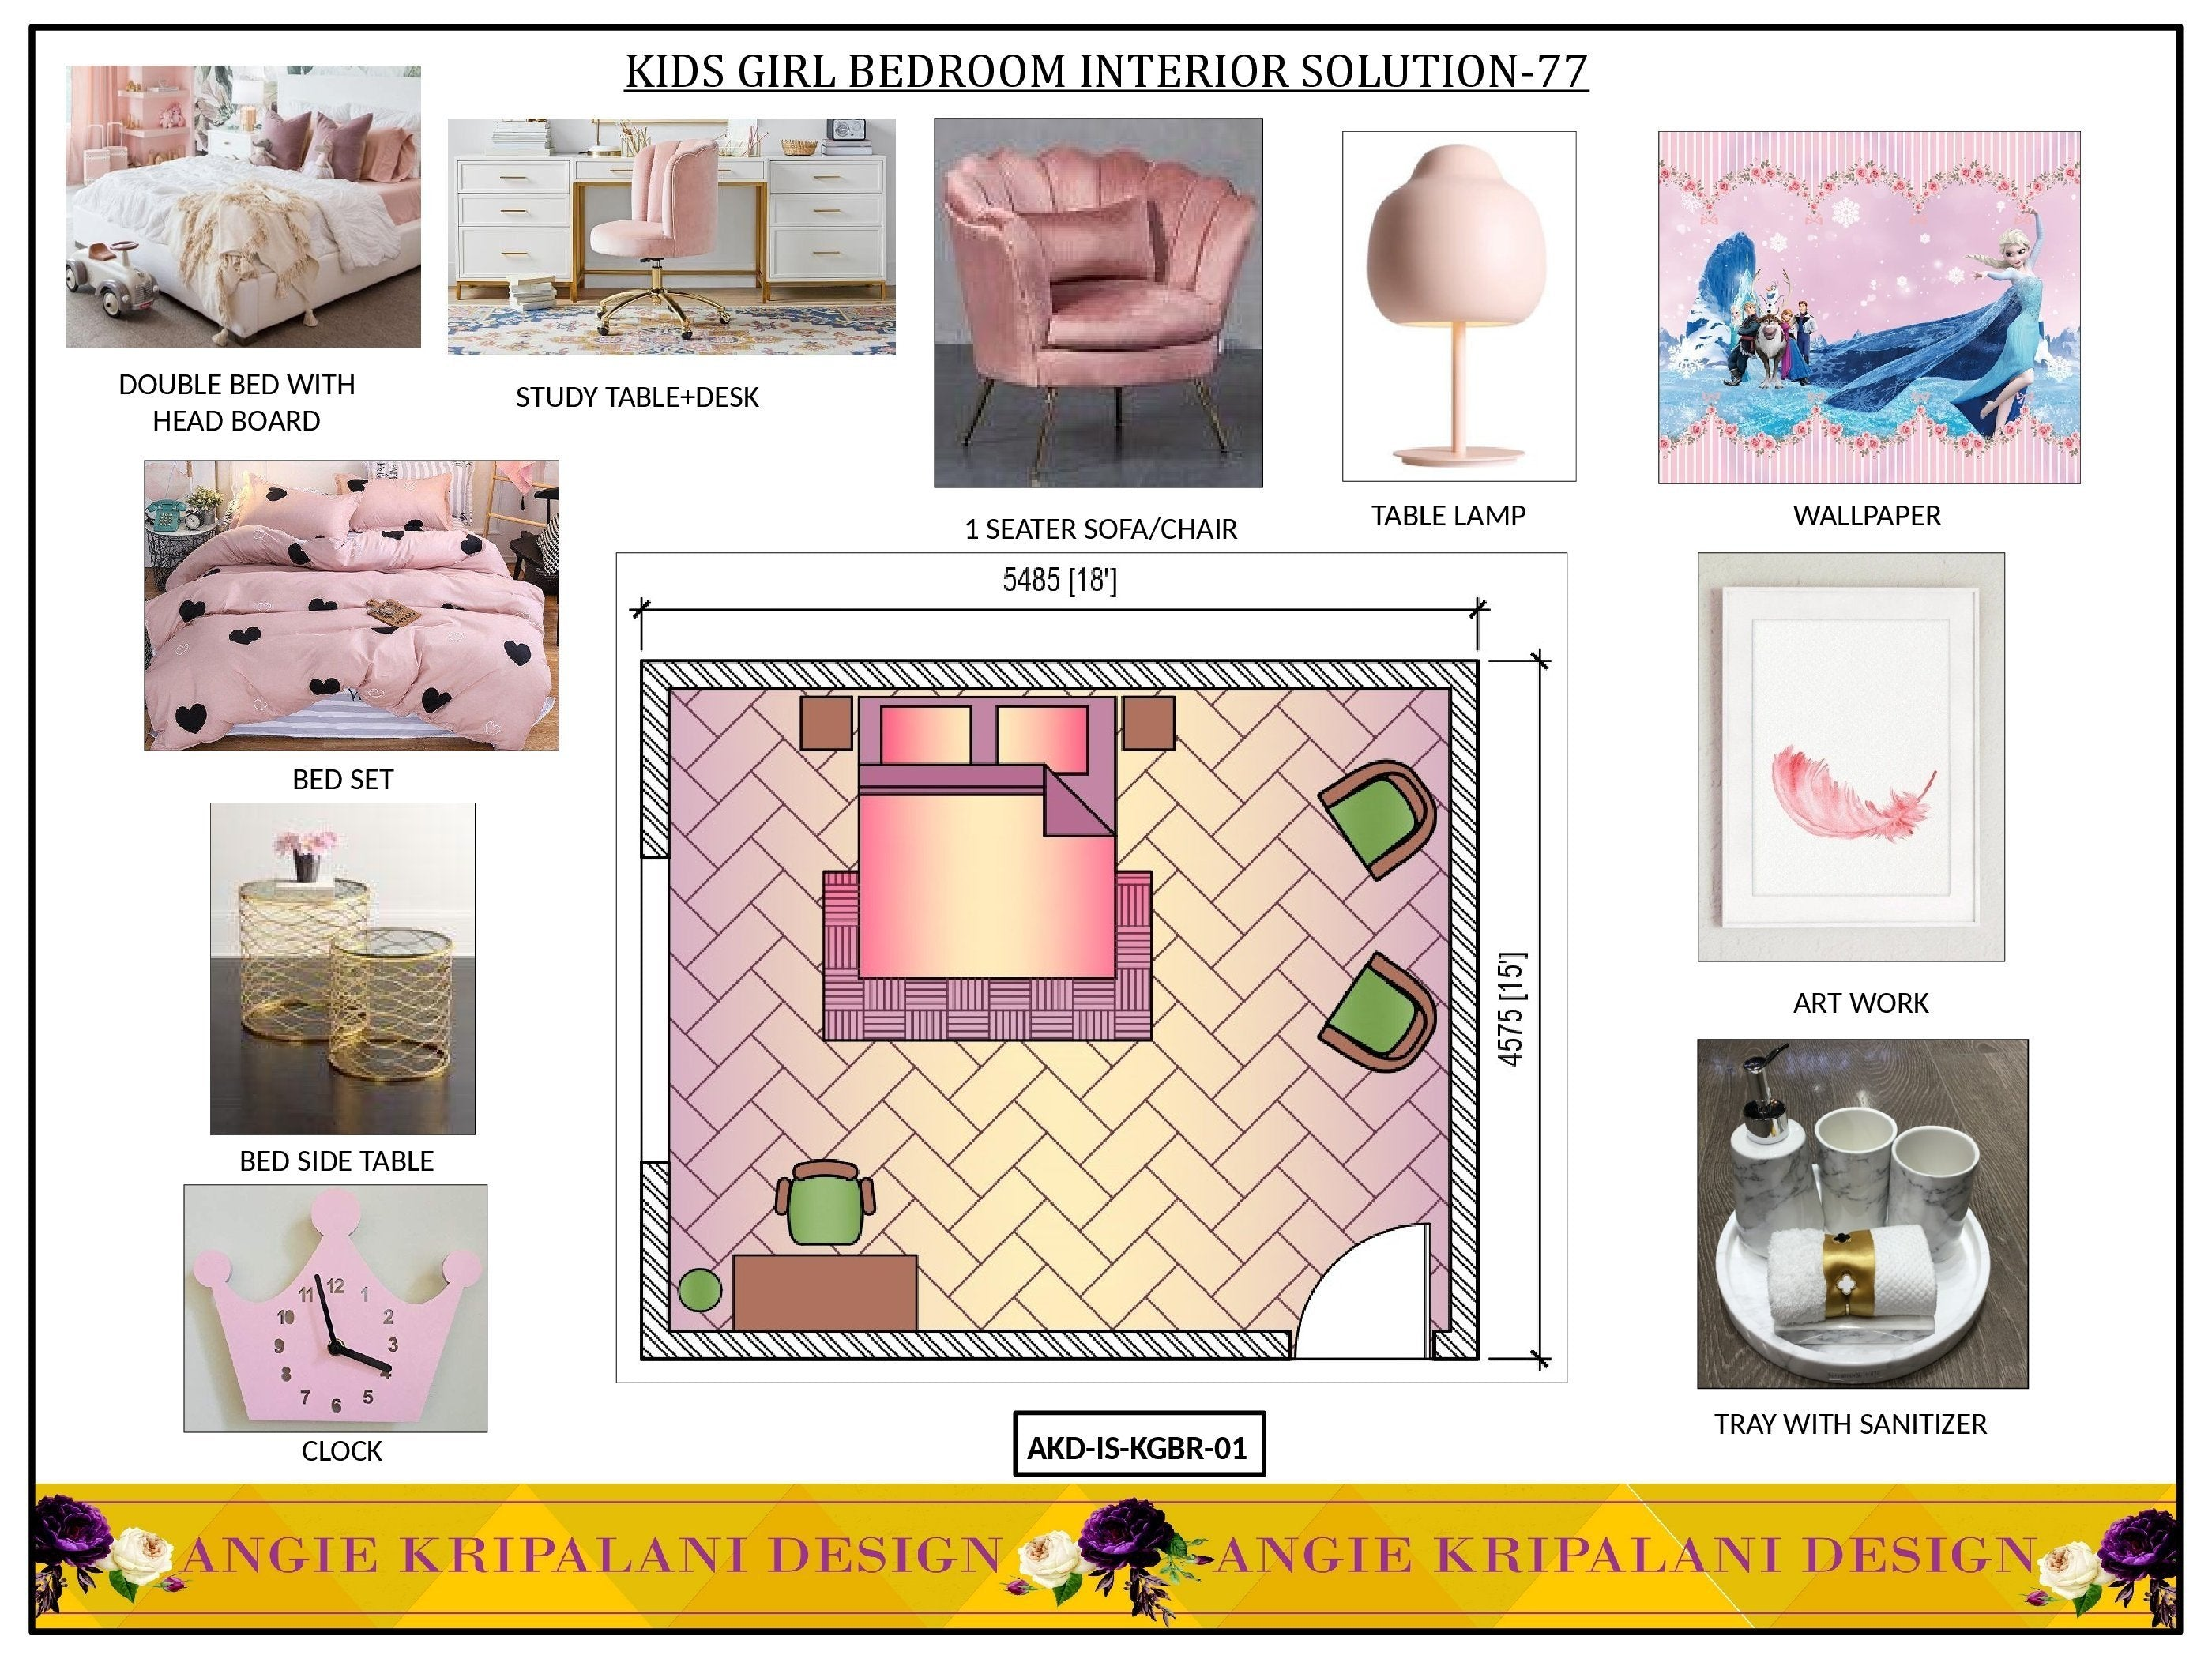 KIDS GIRL BEDROOM INTERIOR SOLUTION-77 ANGIE HOMES